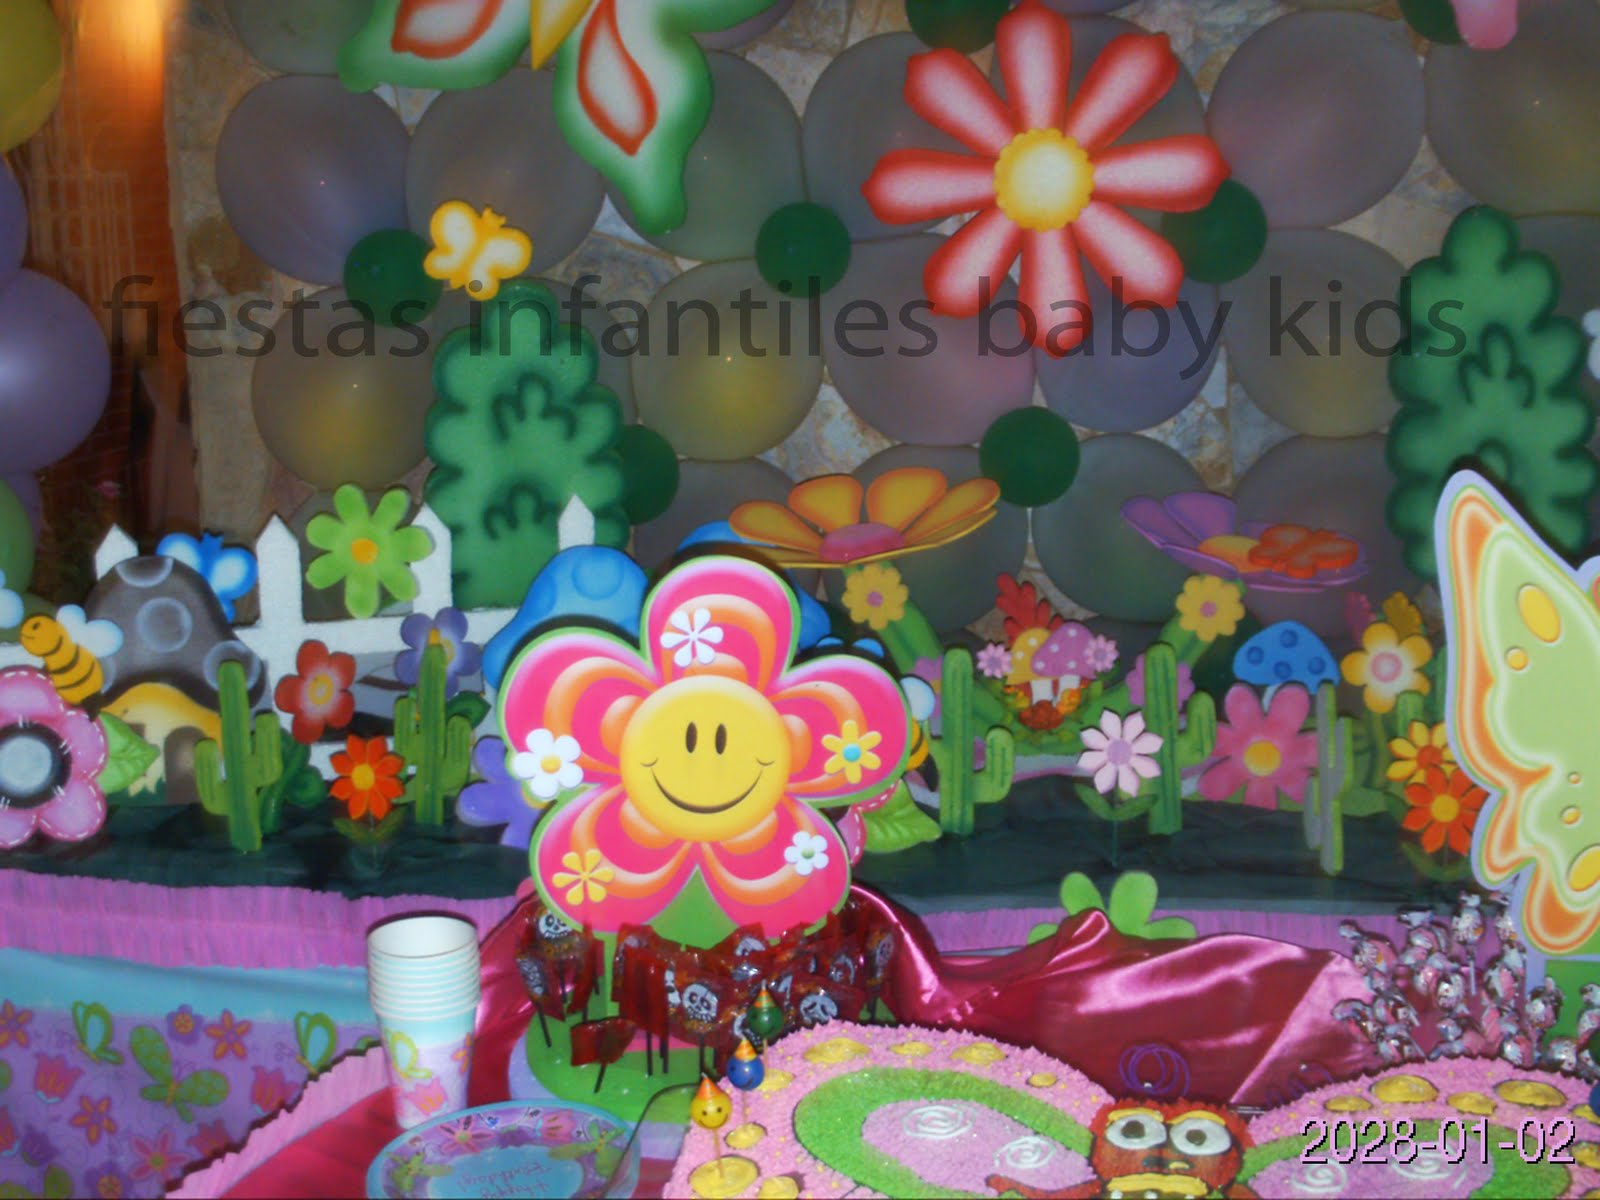 Fiestas infantiles baby kids decoracion de mariposa jardin for Decoracion e